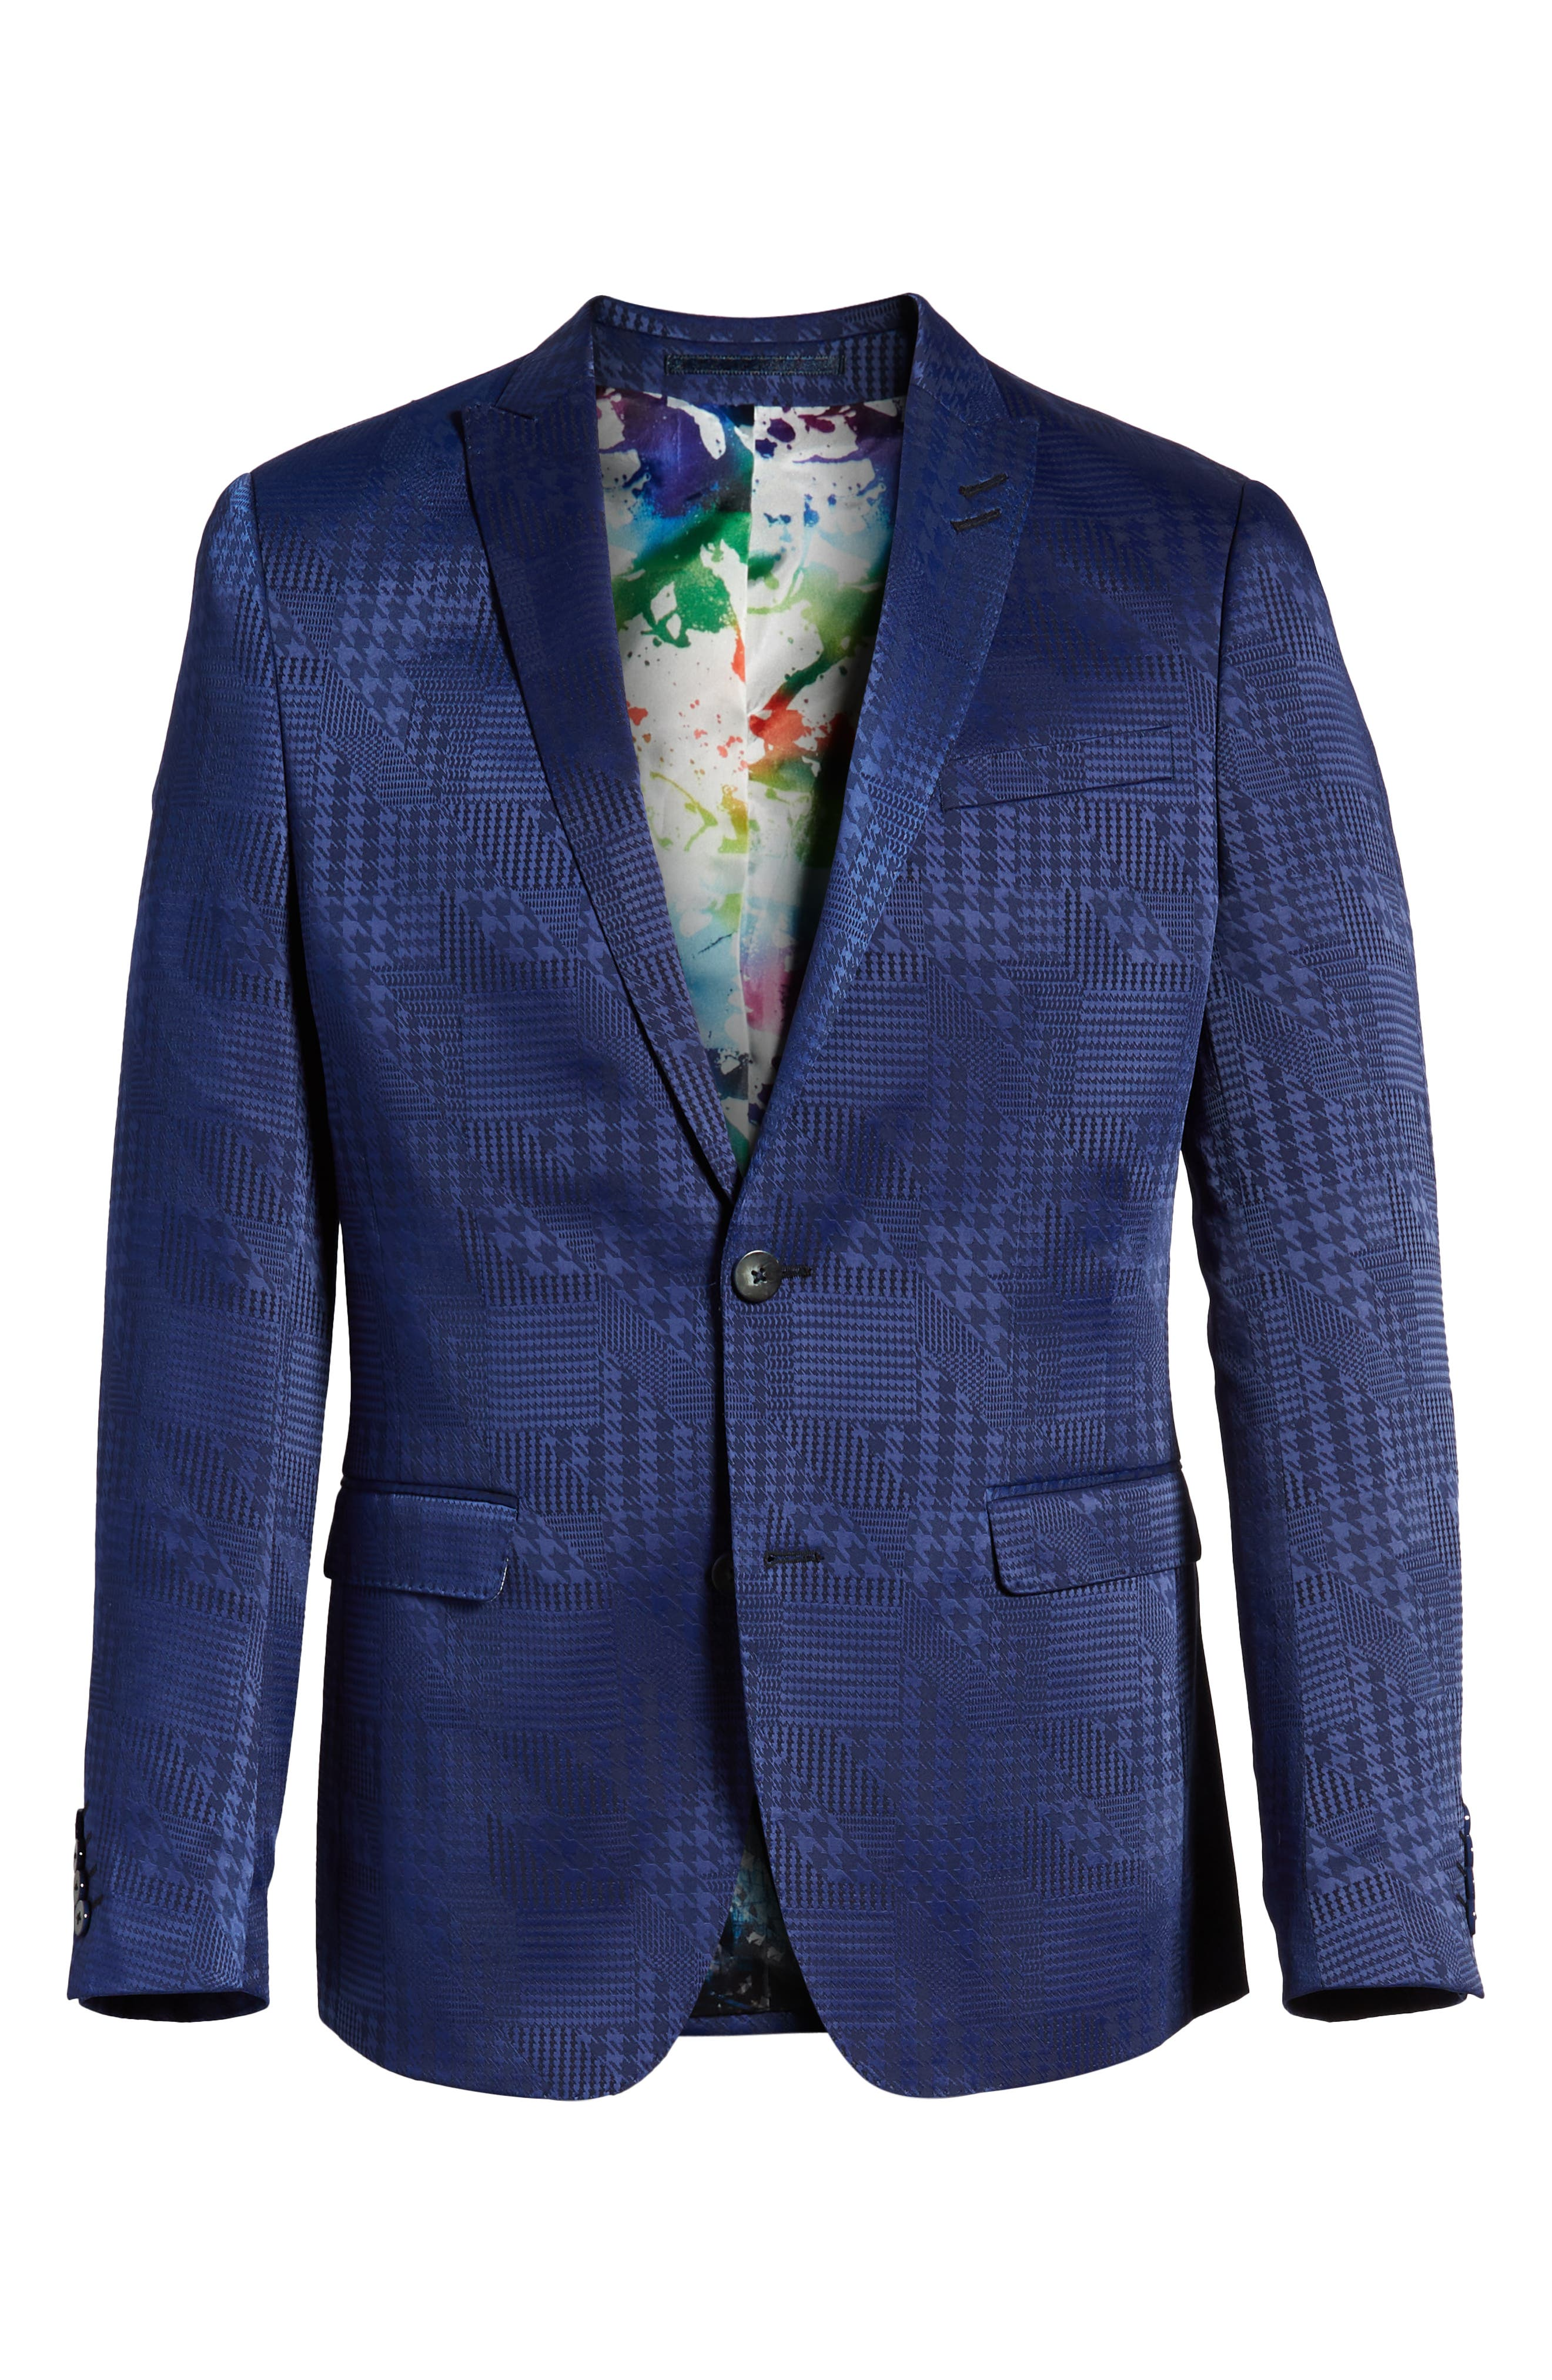 Descartes Patch Houndstooth Sport Coat,                             Alternate thumbnail 5, color,                             420